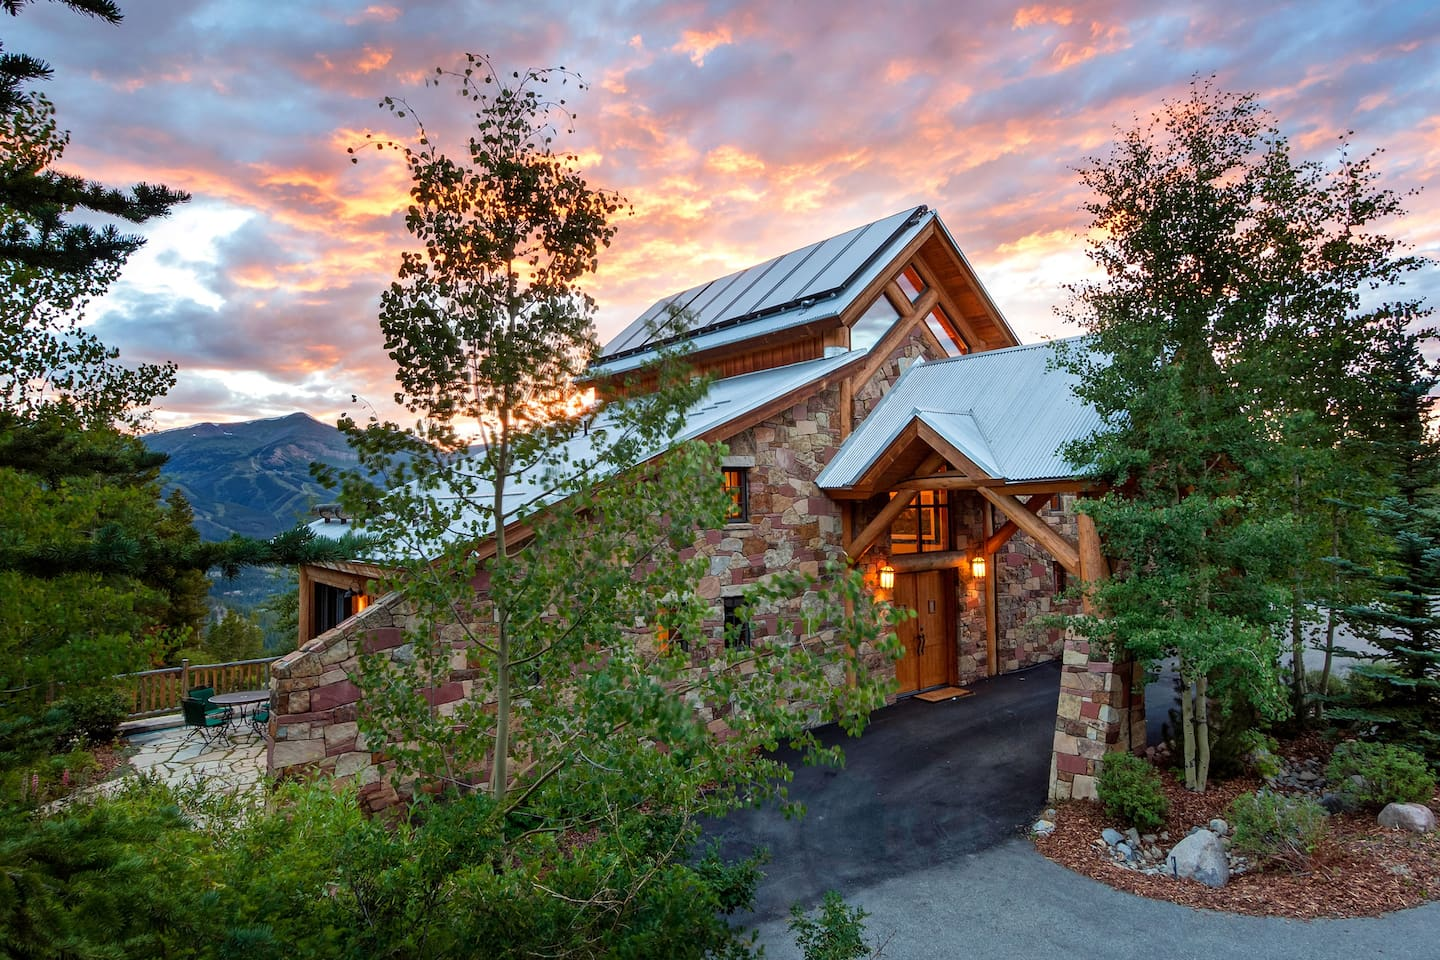 Set on a private two plus acre lot, Rubywood offers not only luxurious accommodations but stunning panoramic views of the Ten Mile Range and the Breckenridge Ski Resort